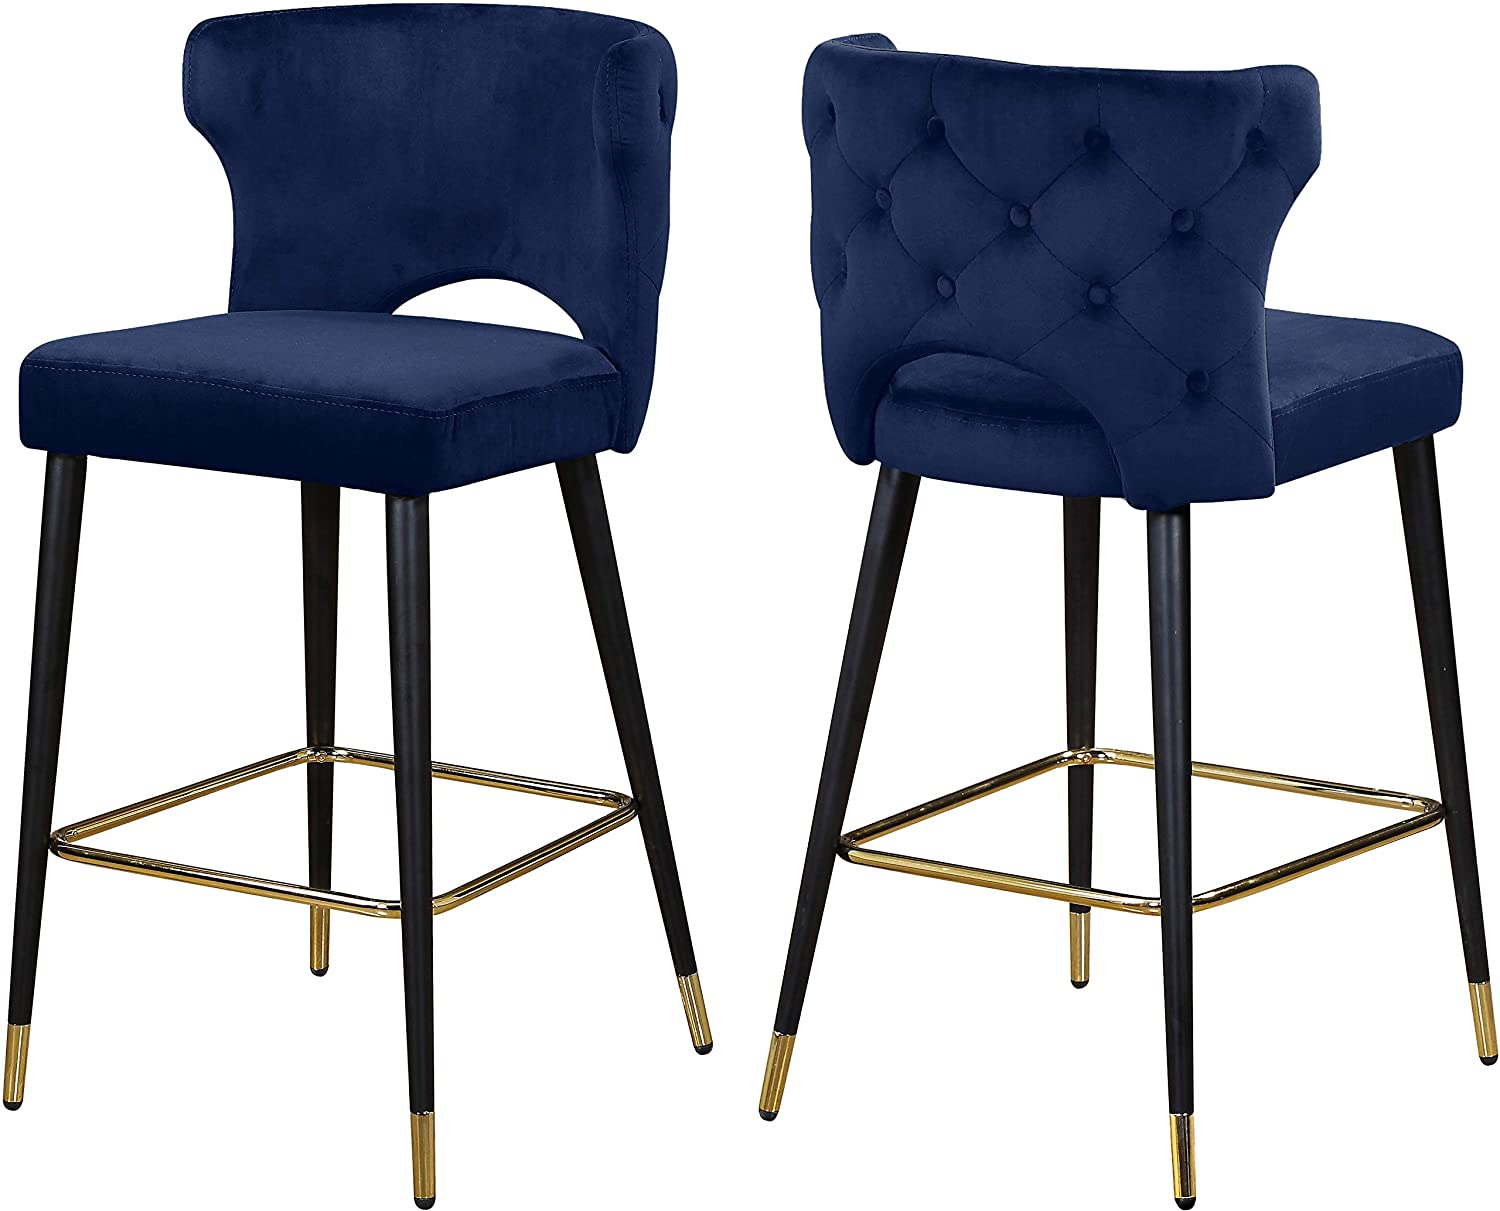 Meridian Furniture Kelly Collection Modern   Contemporary Velvet Upholstered Counter Height Stool with Gold Tipped, Black Metal Legs, Navy, 22